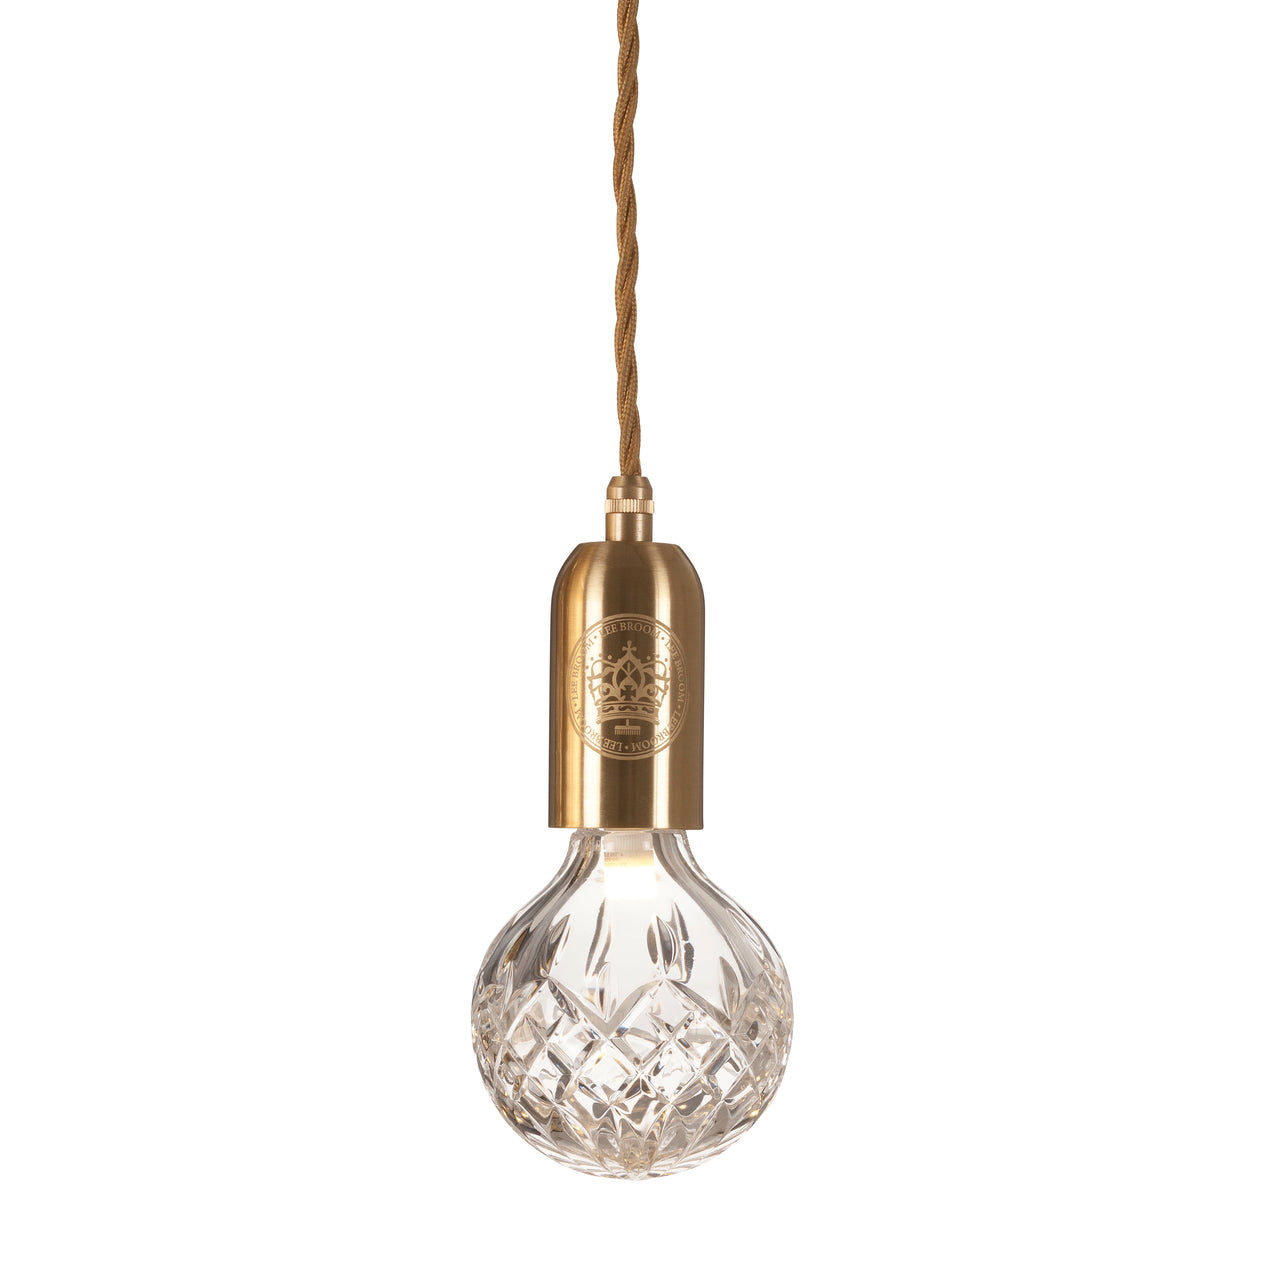 Crystal Bulb + Pendant: Bulb + Brushed Brass Fitting + Clear Crystal